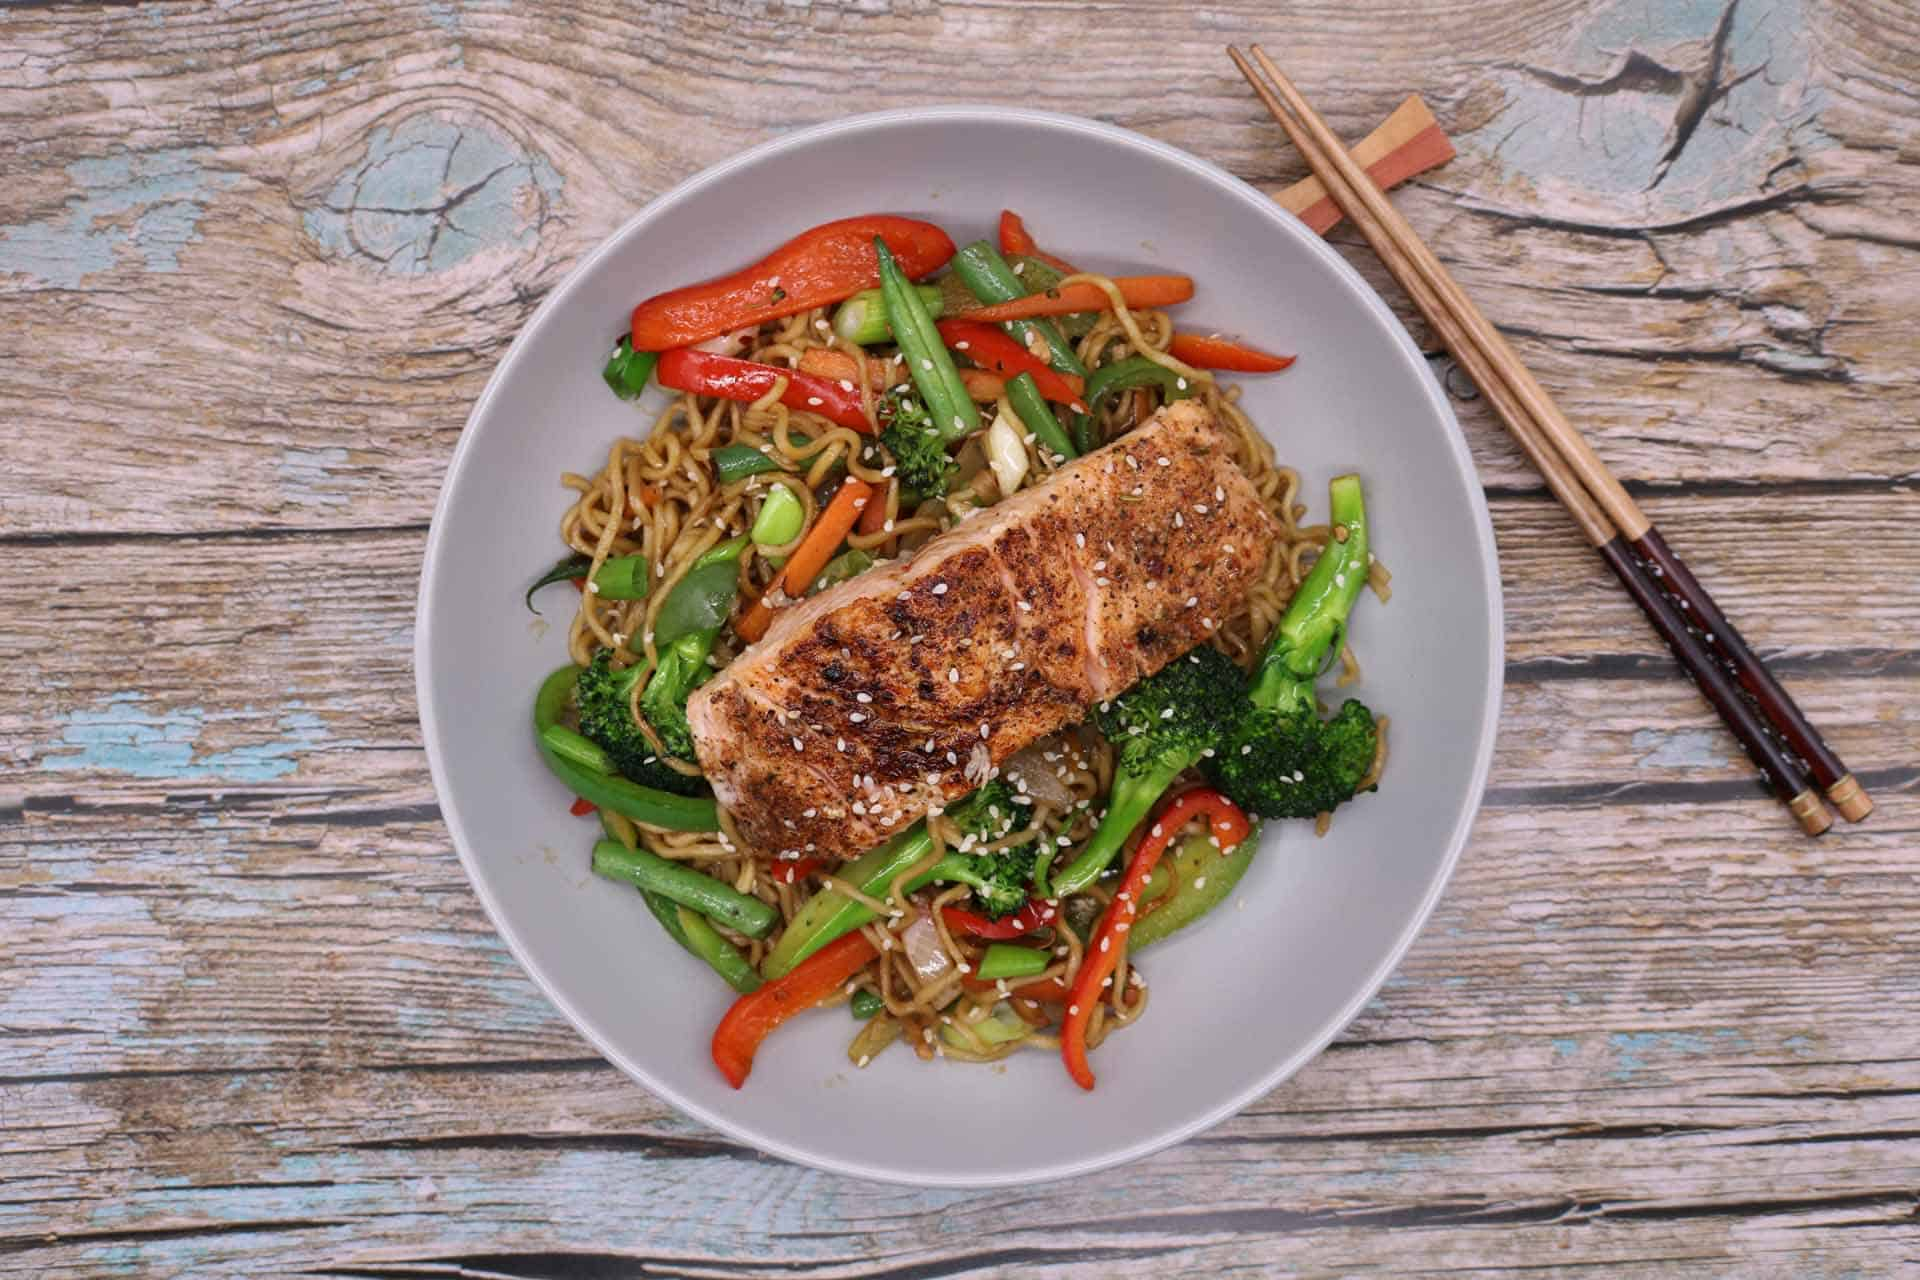 Salmon with Chilli and Oyster Sauce Noodles, Salmon with Chilli and Oyster Sauce Noodles